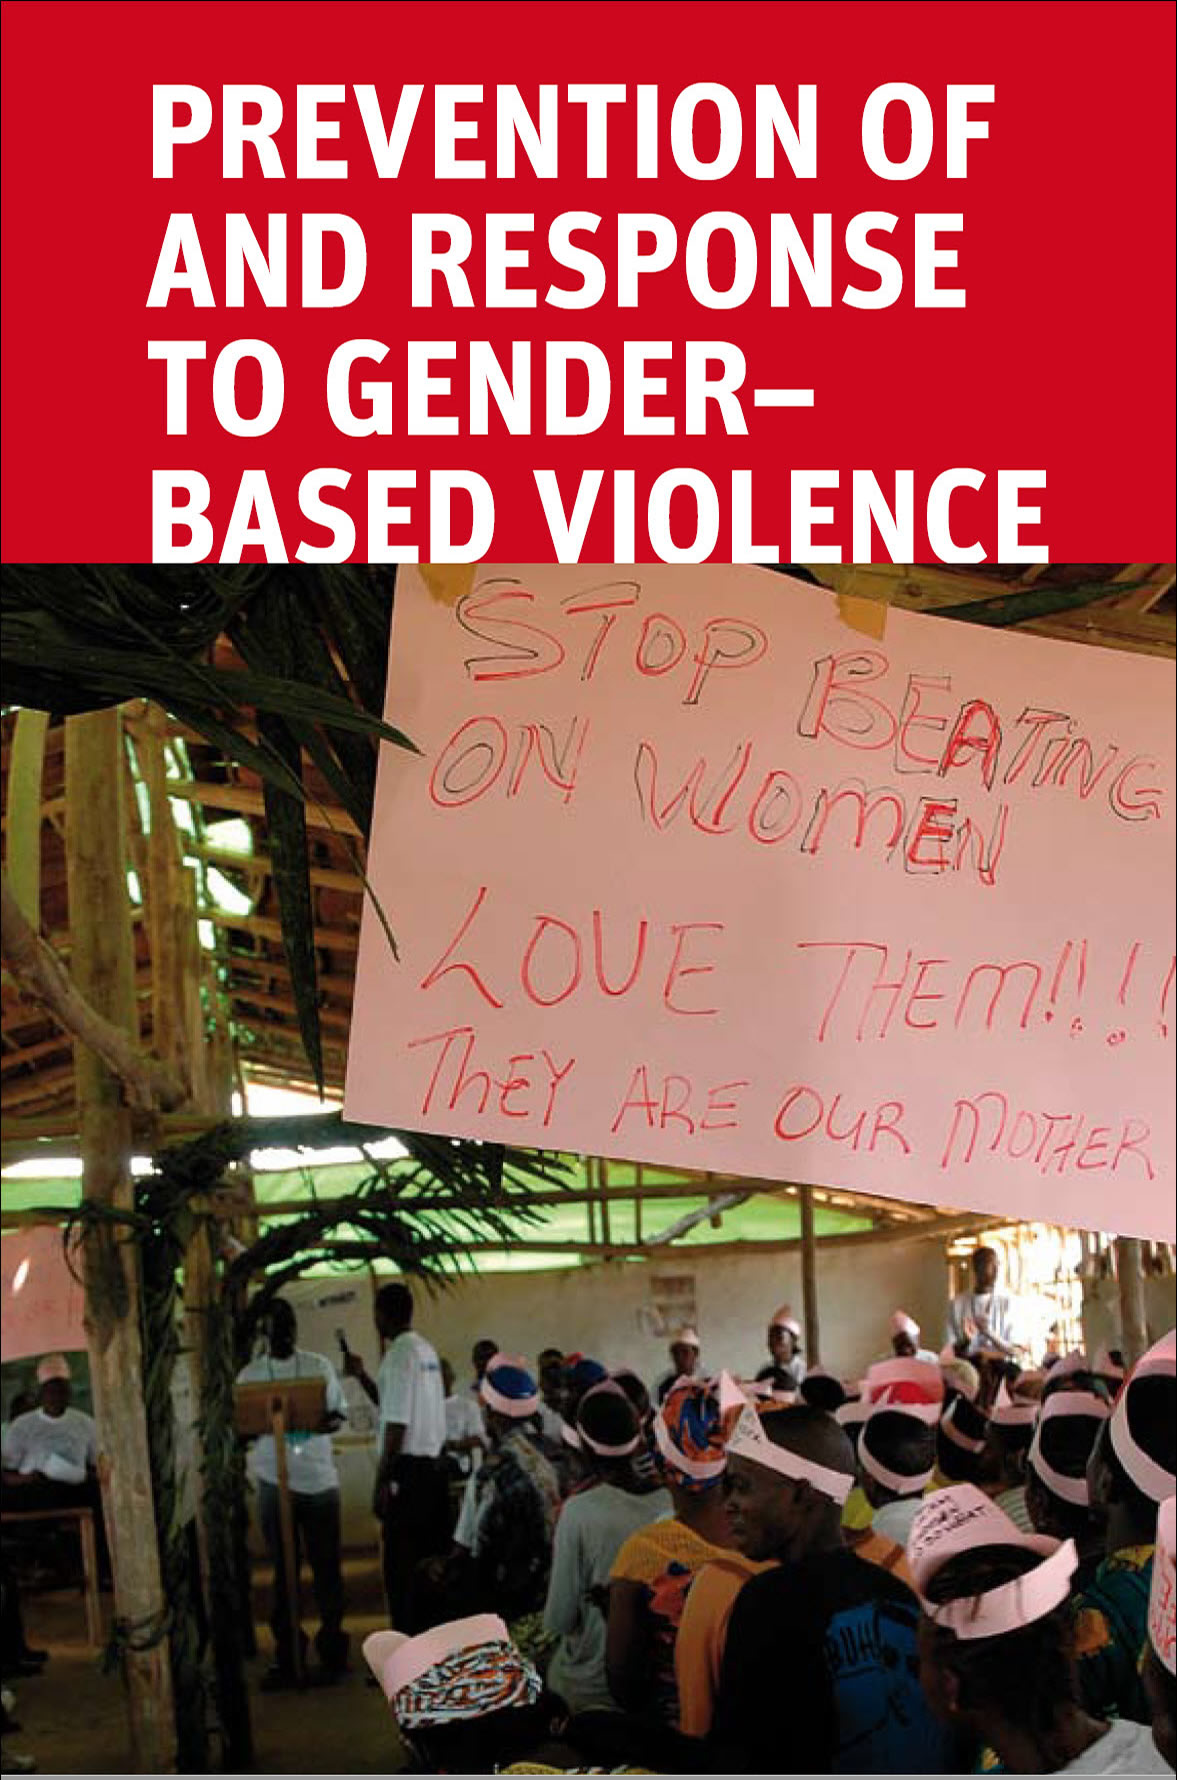 PREVENTION OF AND RESPONSE TO GENDER BASED VIOLENCE